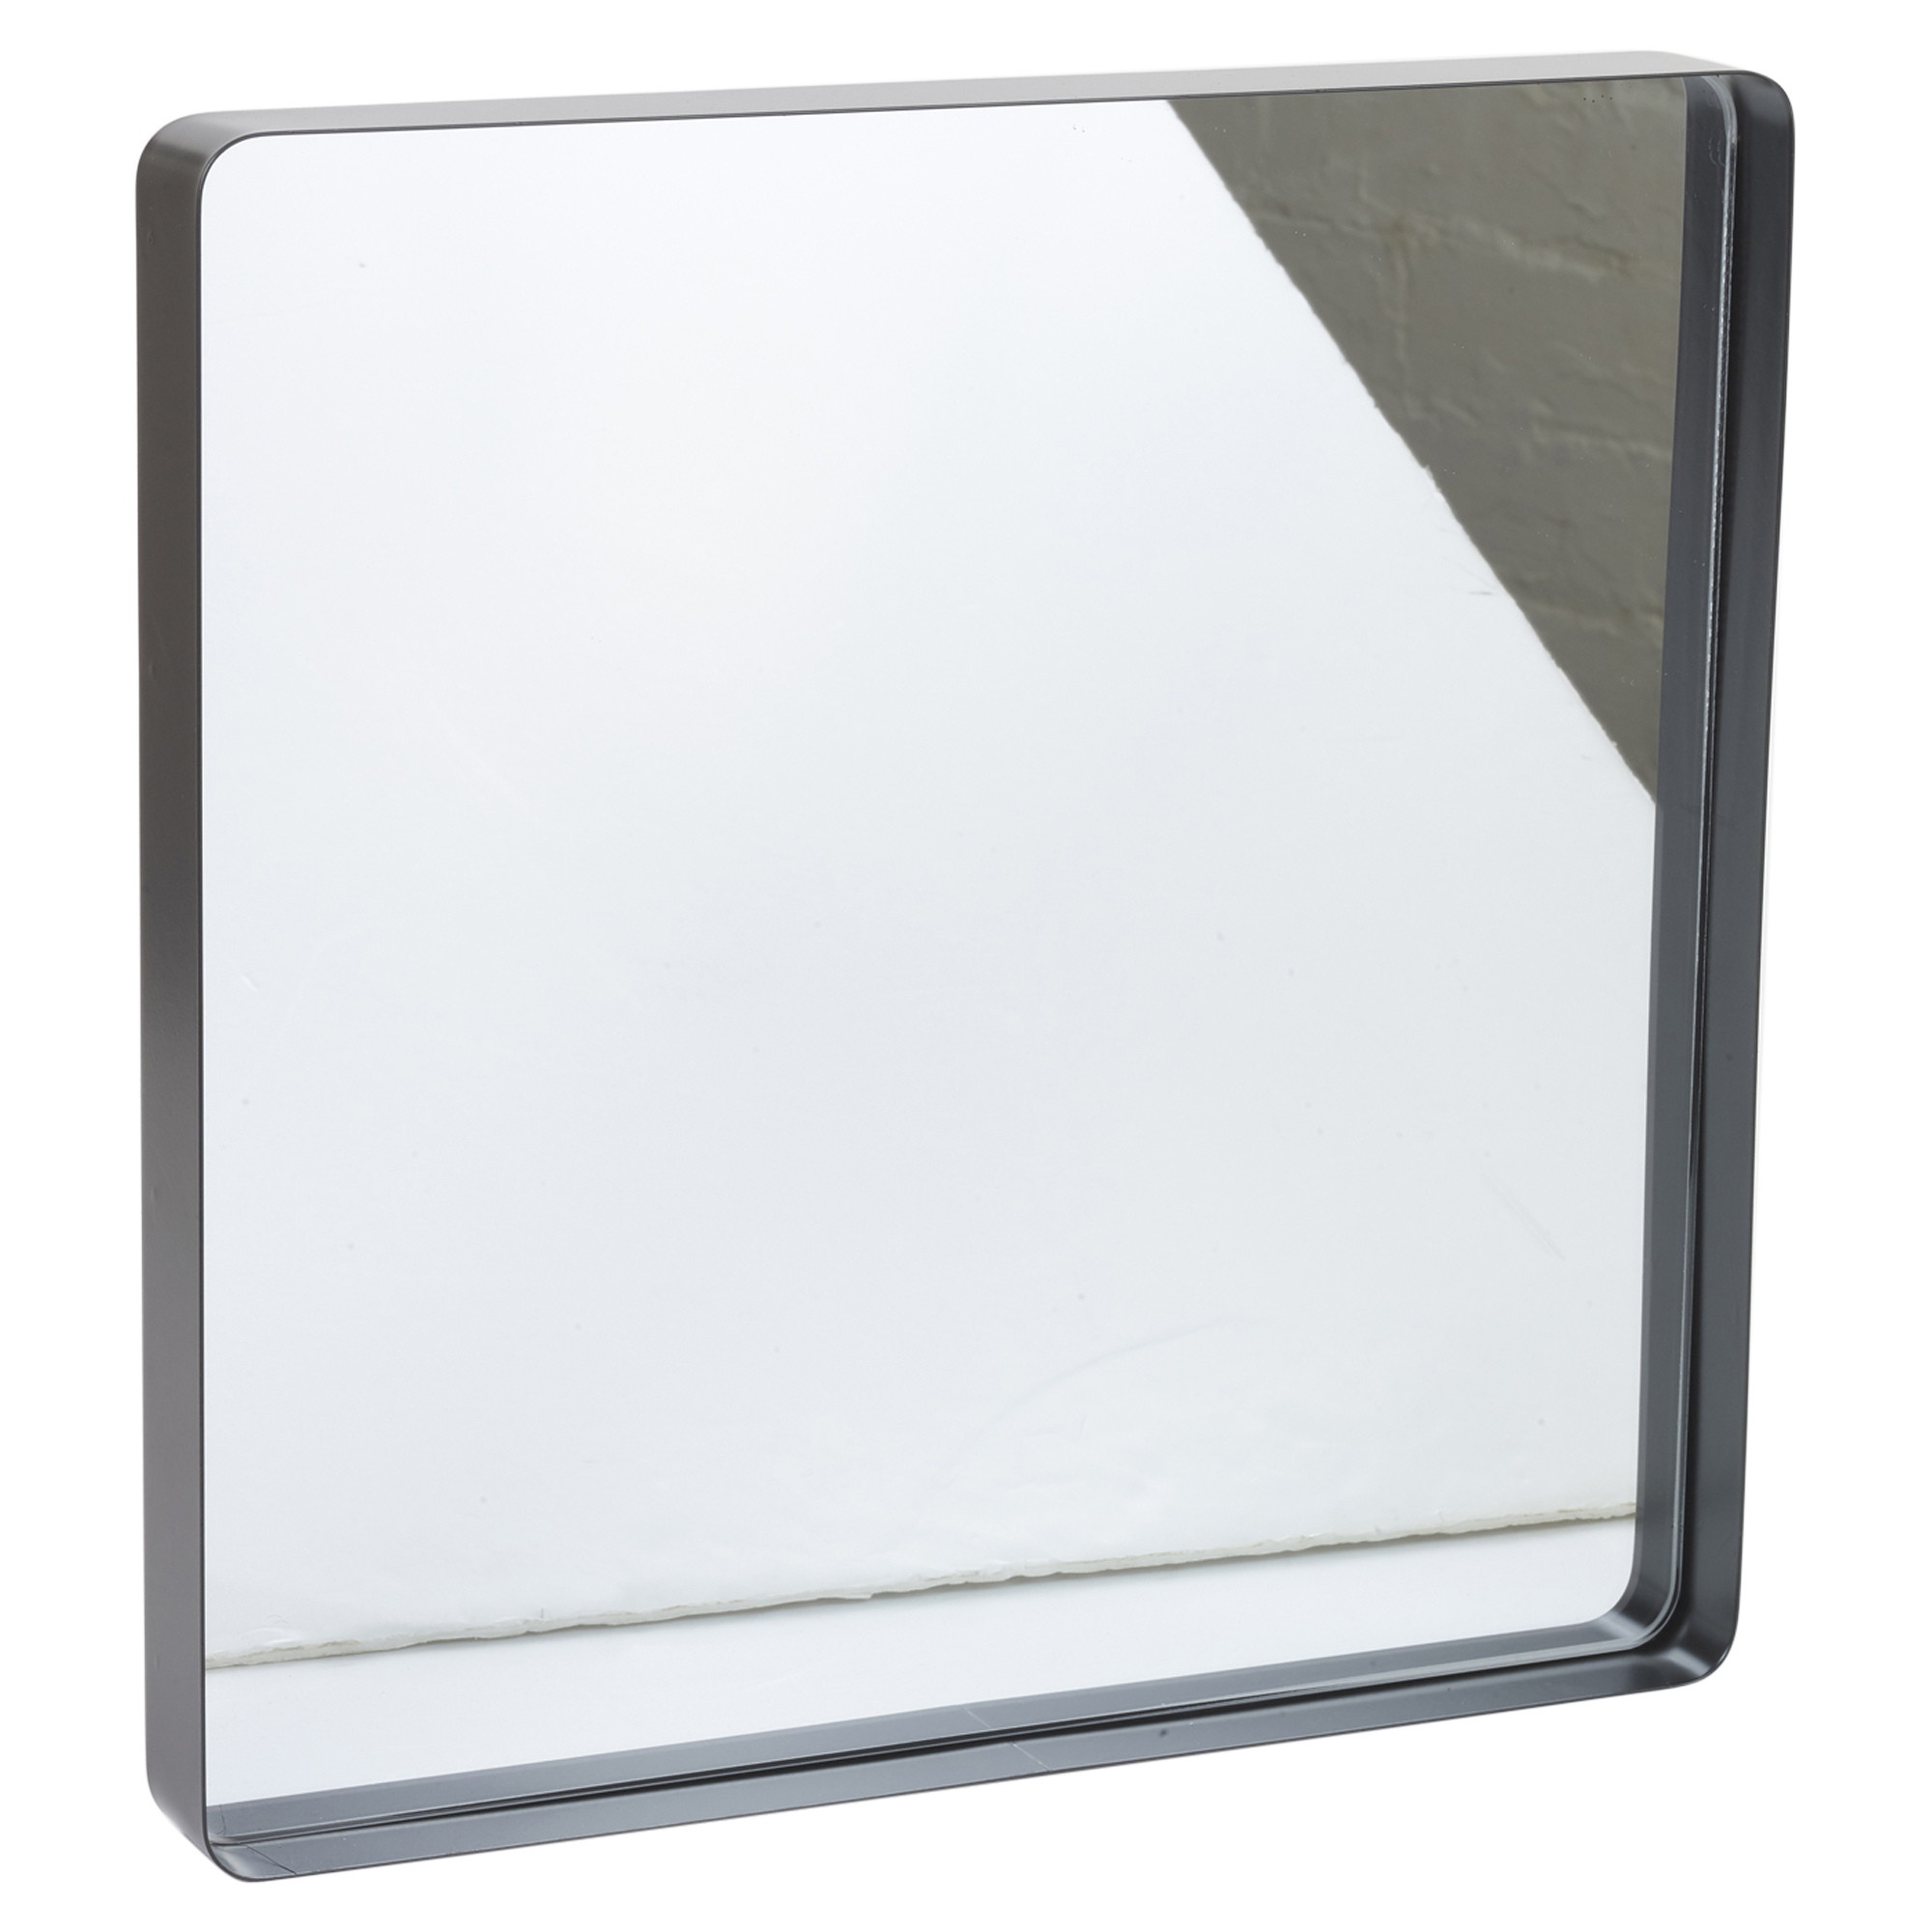 Metal Framed Mirrors Bathroom  Square Inset Design Metal Frame Bathroom Mirror Modern